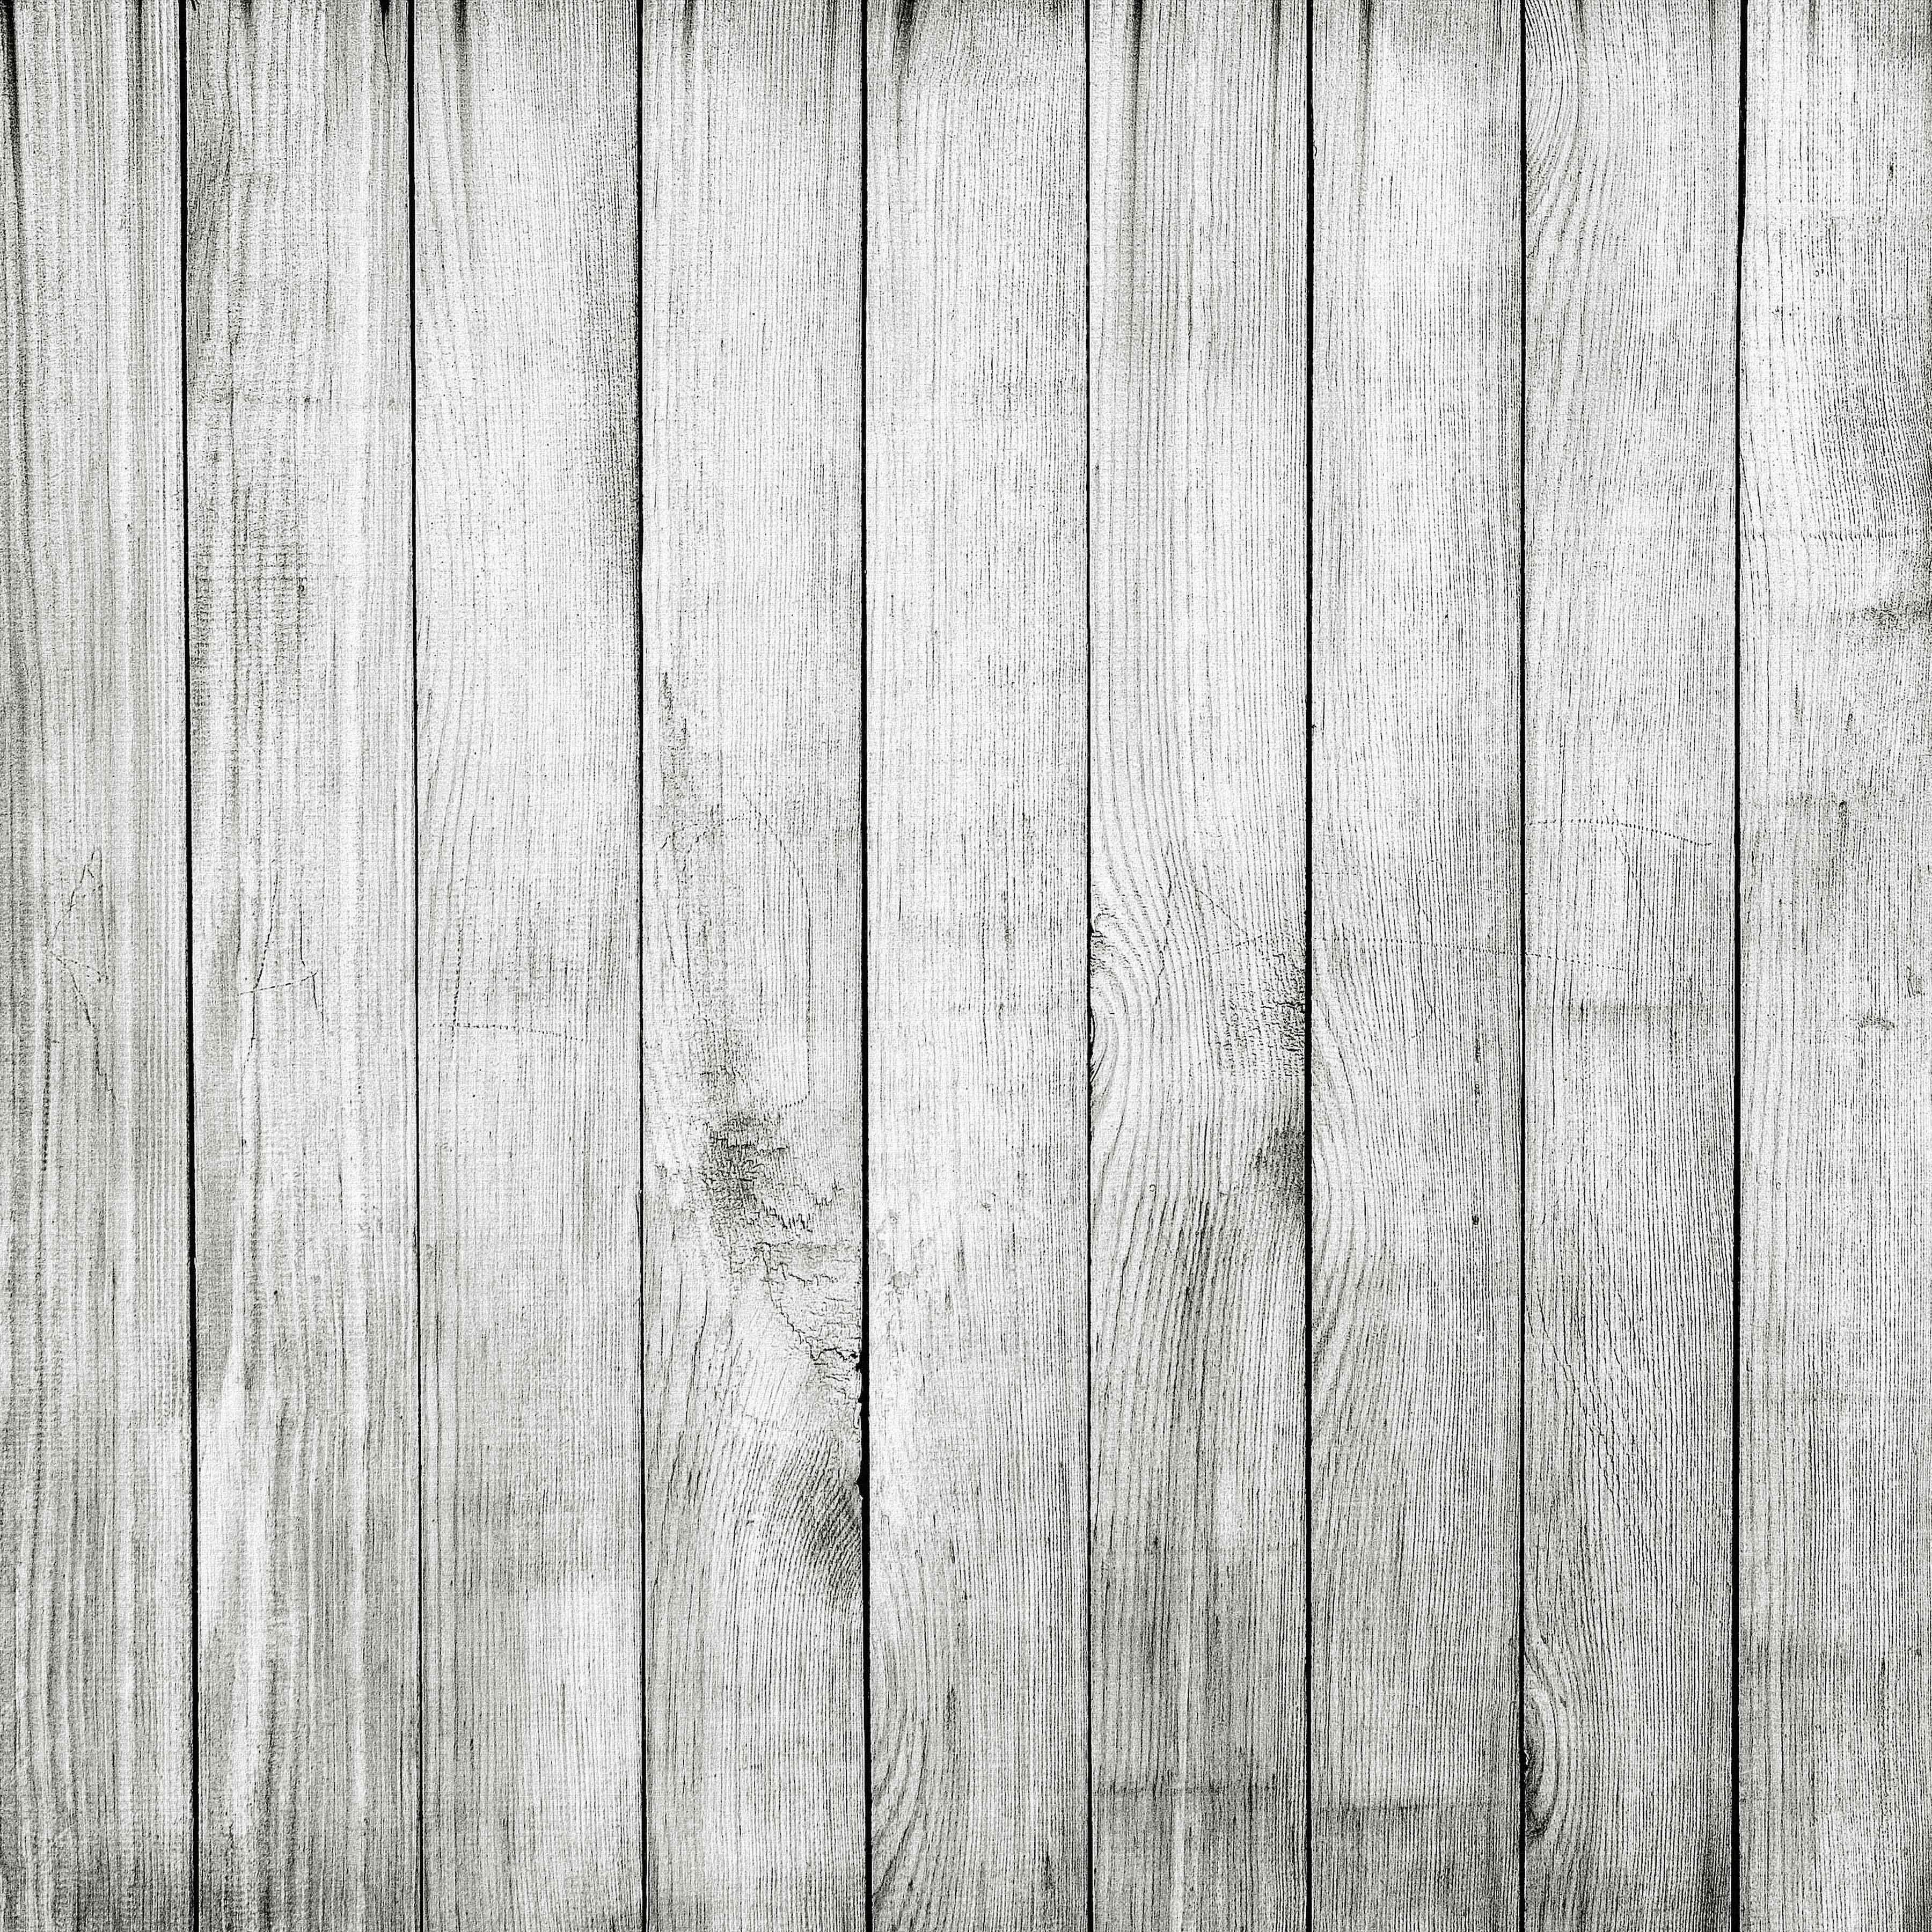 Free Wood Backgrounds 4 Media Cache Ec2pinimg Originals 4a 89 80 4a89805a3be911ebdcf498d8de3afae0